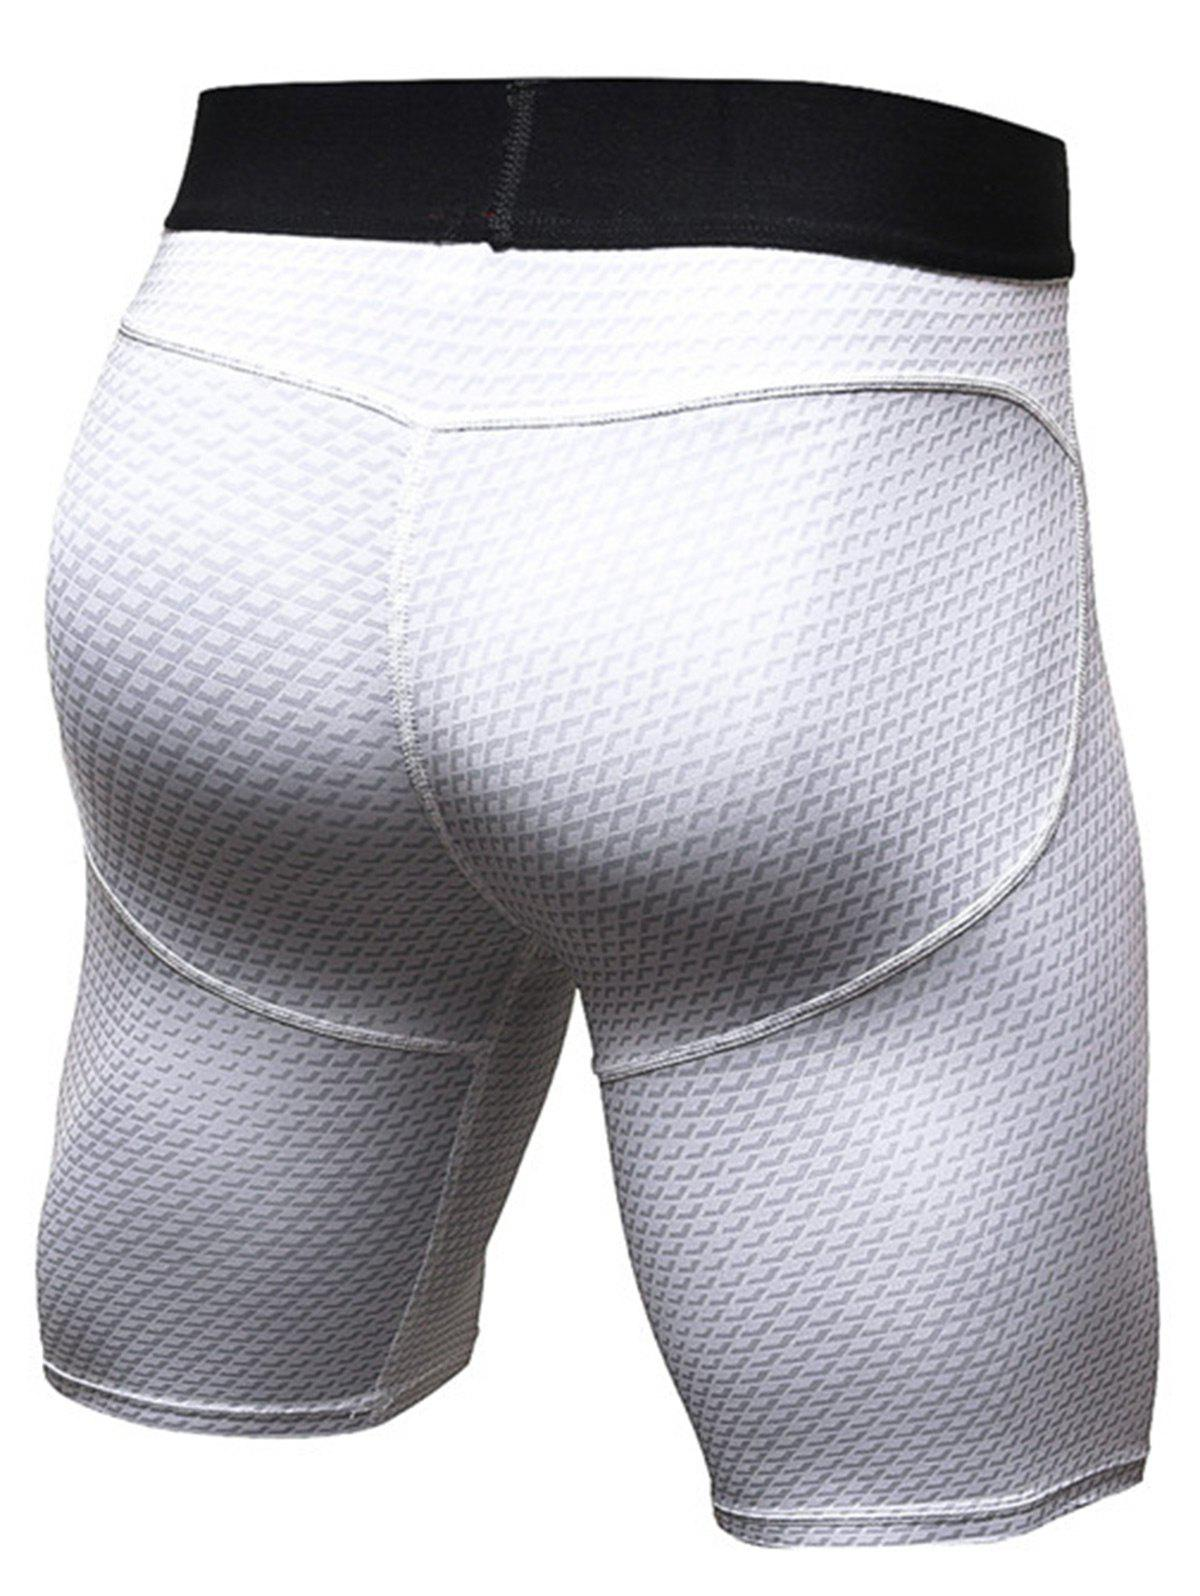 3D Geometric Print Fitted Quick Dry Gym Shorts - WHITE XL